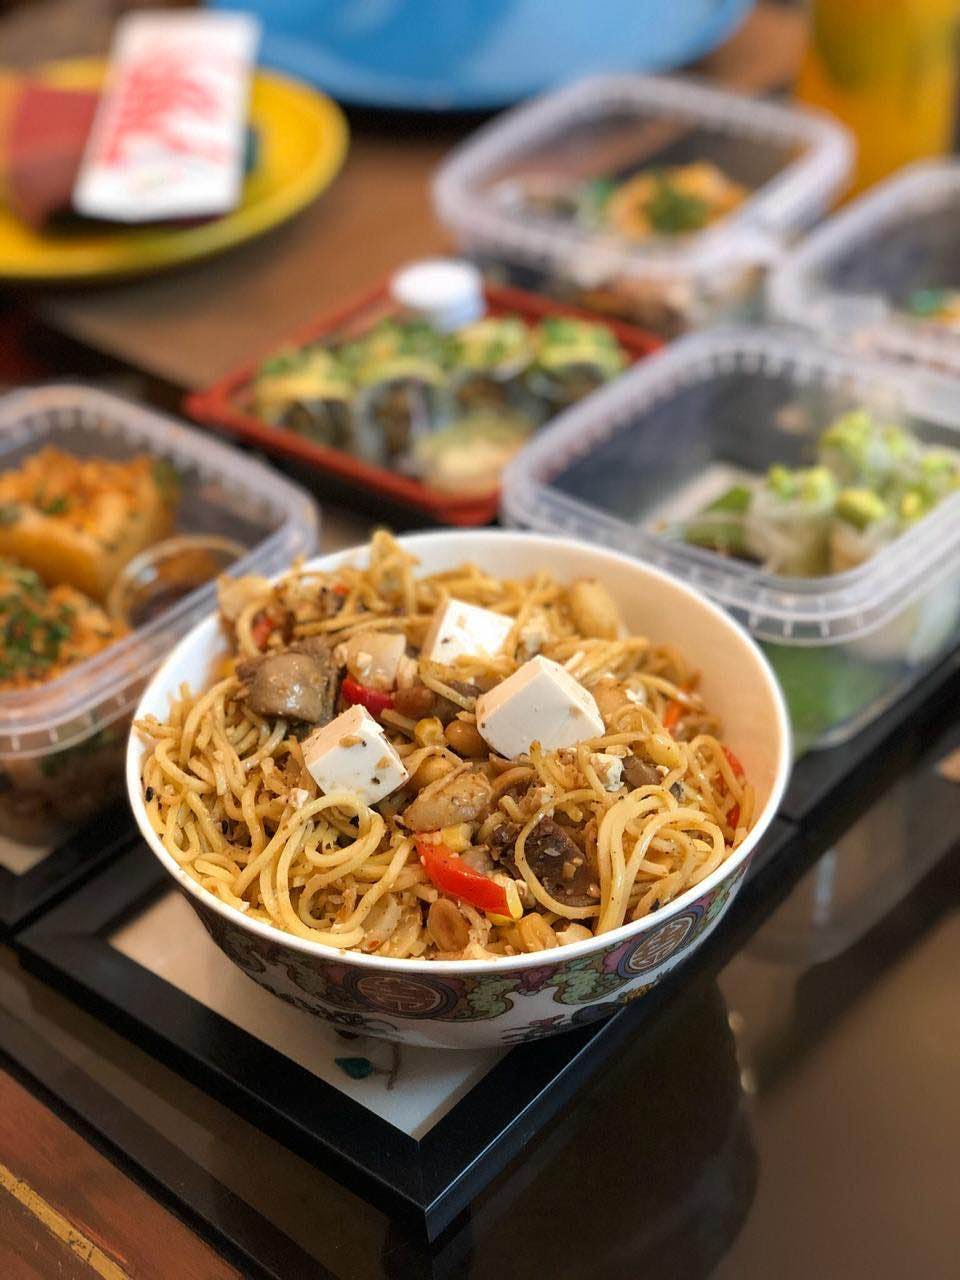 Dish,Food,Cuisine,Fried noodles,Ingredient,Noodle,Pancit,Chinese noodles,Chinese food,Yakisoba